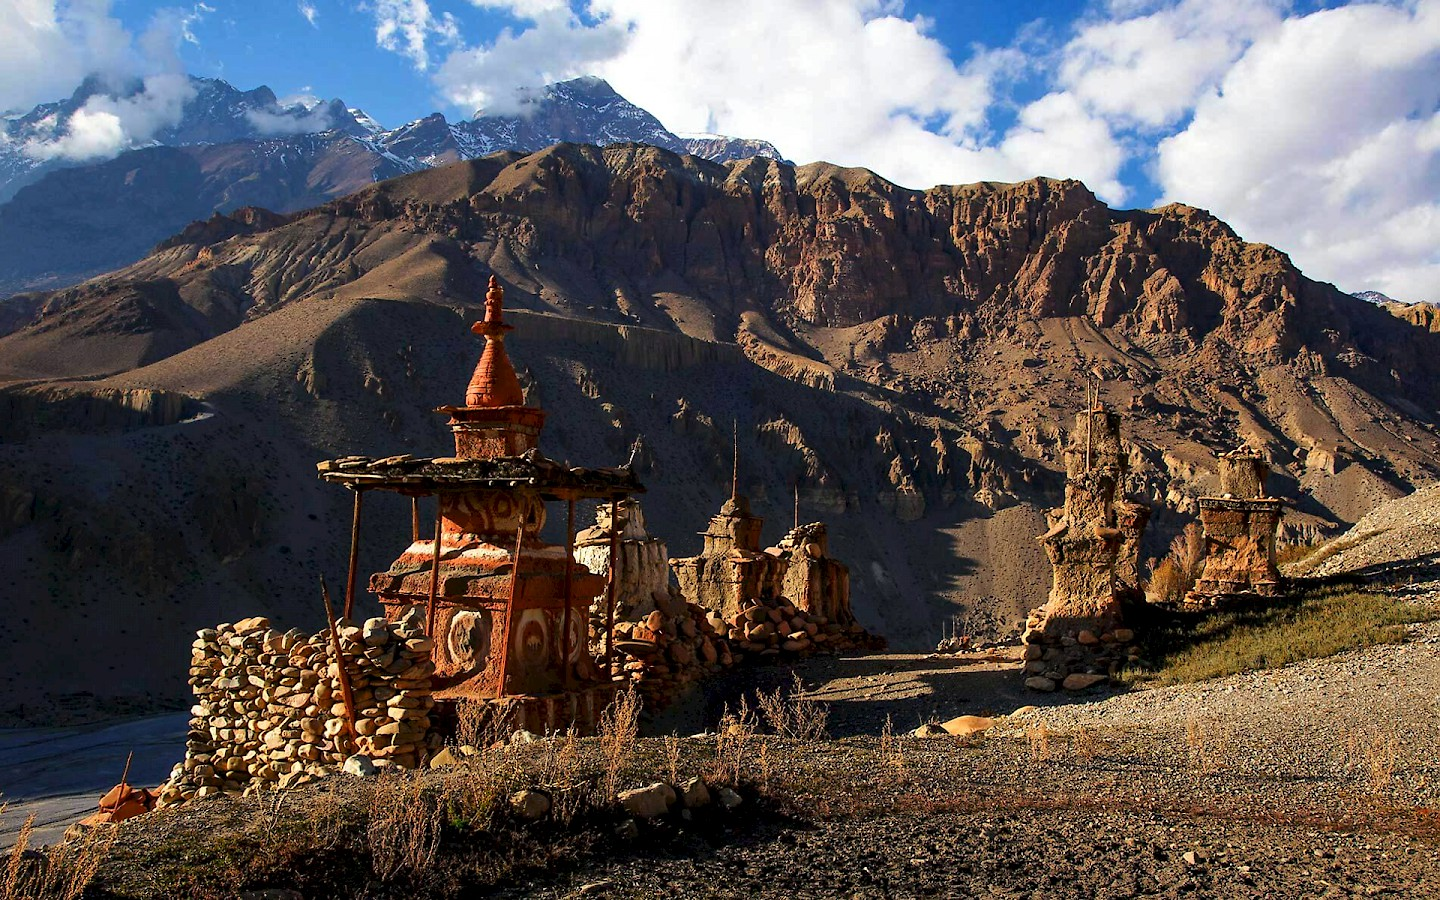 The Upper Mustang, sometimes known as the Forbidden Kingdom, lies in North Western Nepal bordering the high desert region of Tibet to the North and with Annapurna flanking its eastern perimeter. Formerly the Kingdom of Lo.